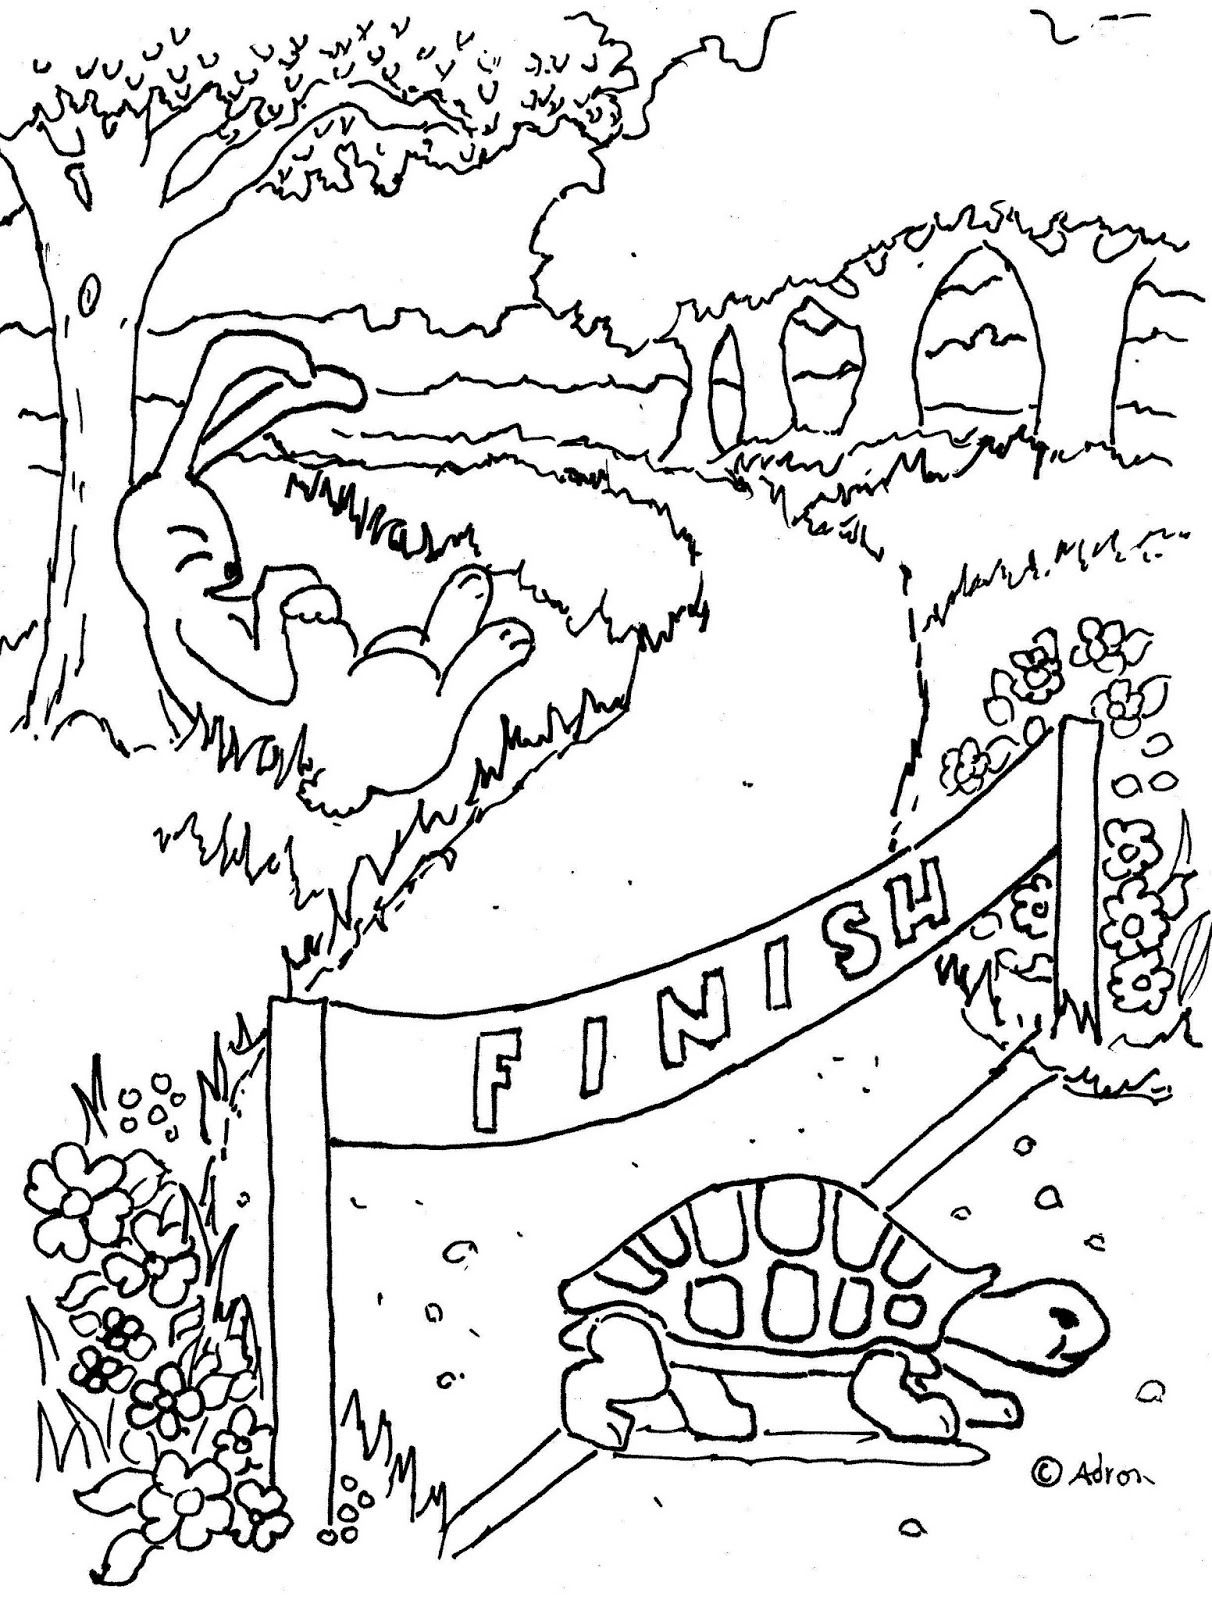 Coloring Pages For Kids By Mr Adron Tortoise And The Tortoise And The Hare Coloring Page